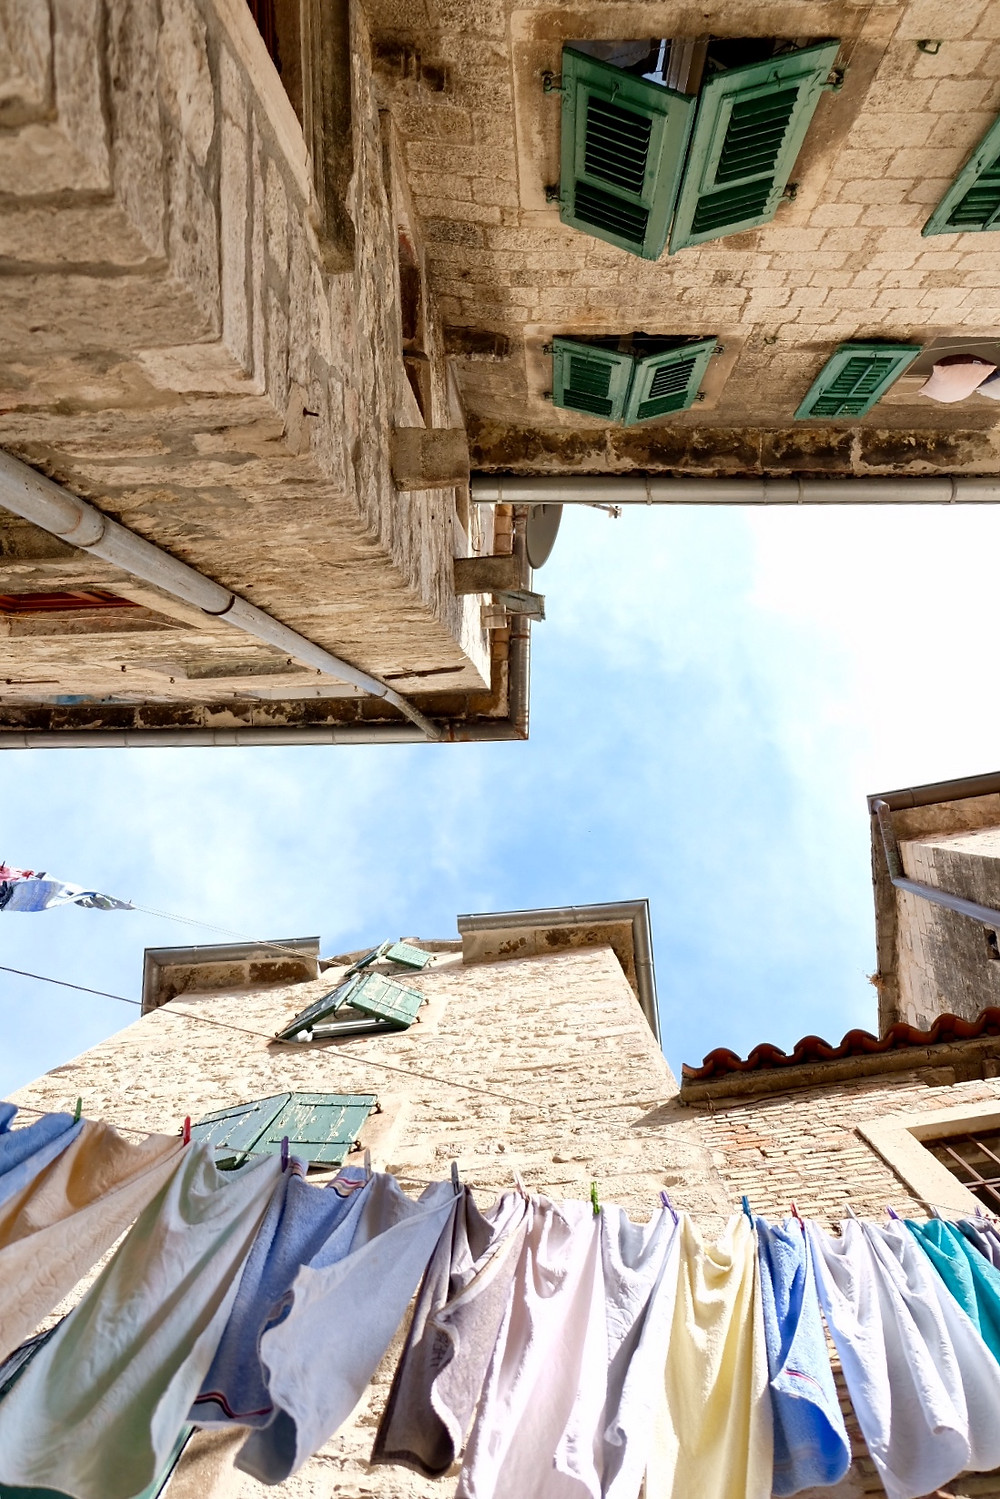 Laundry in the streets of Kotor